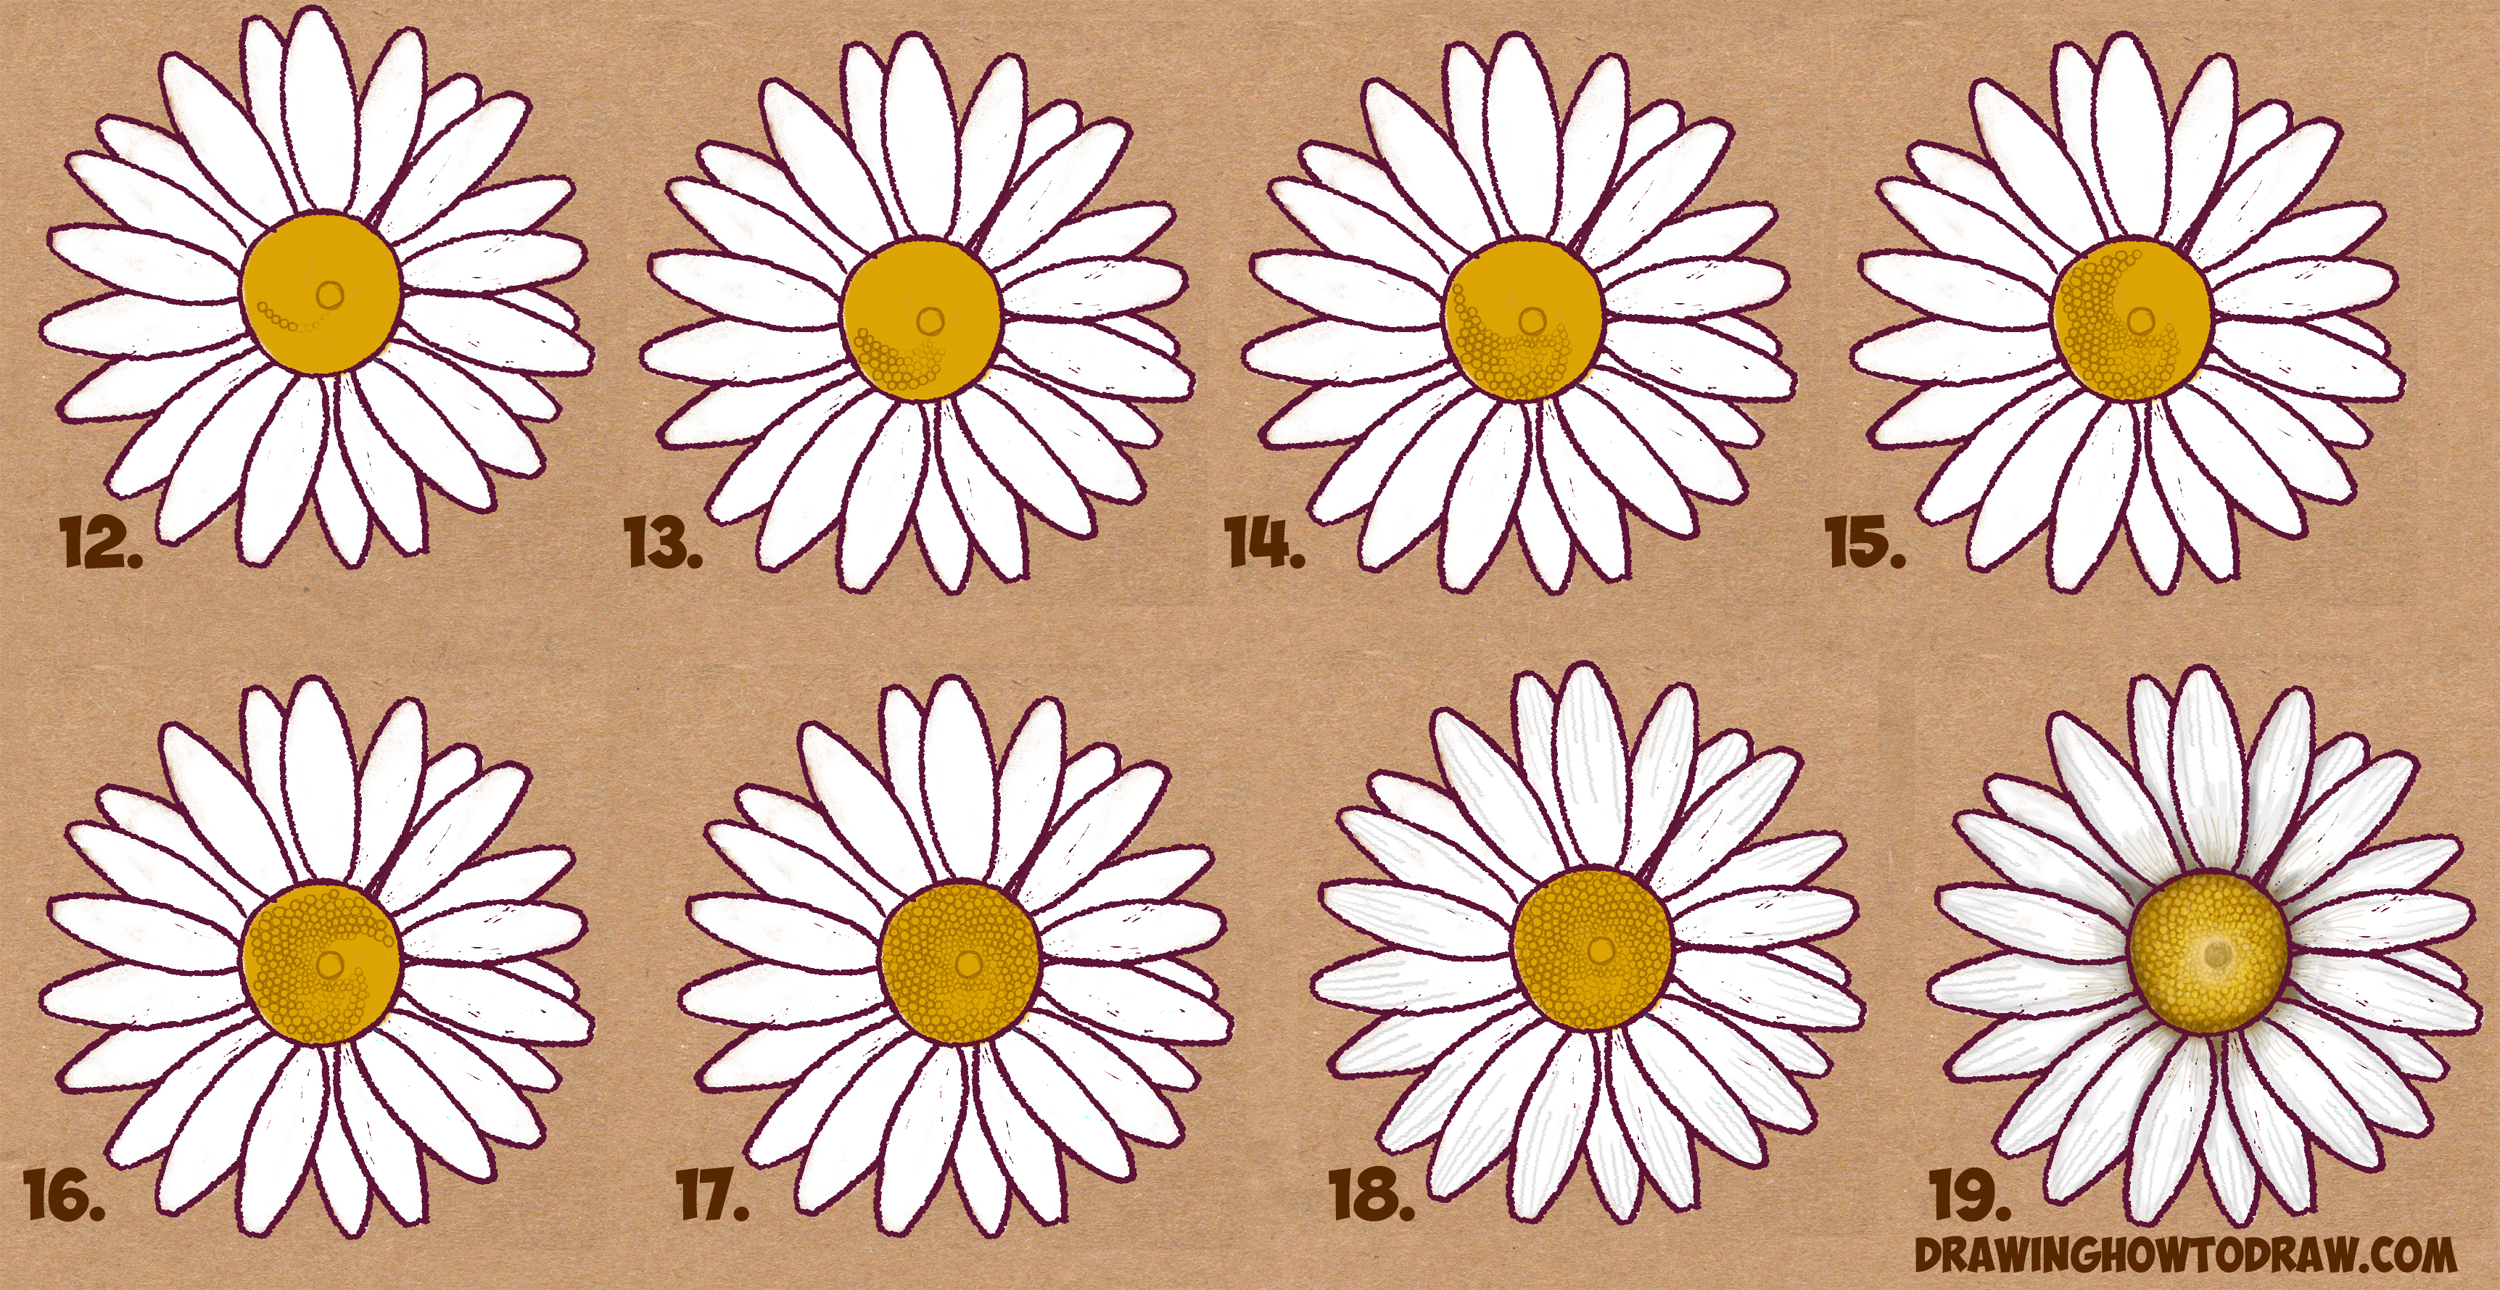 Flower daisy drawing at getdrawings free for personal use 2500x1290 daisy flower drawing how to draw a daisy flower daisies in easy izmirmasajfo